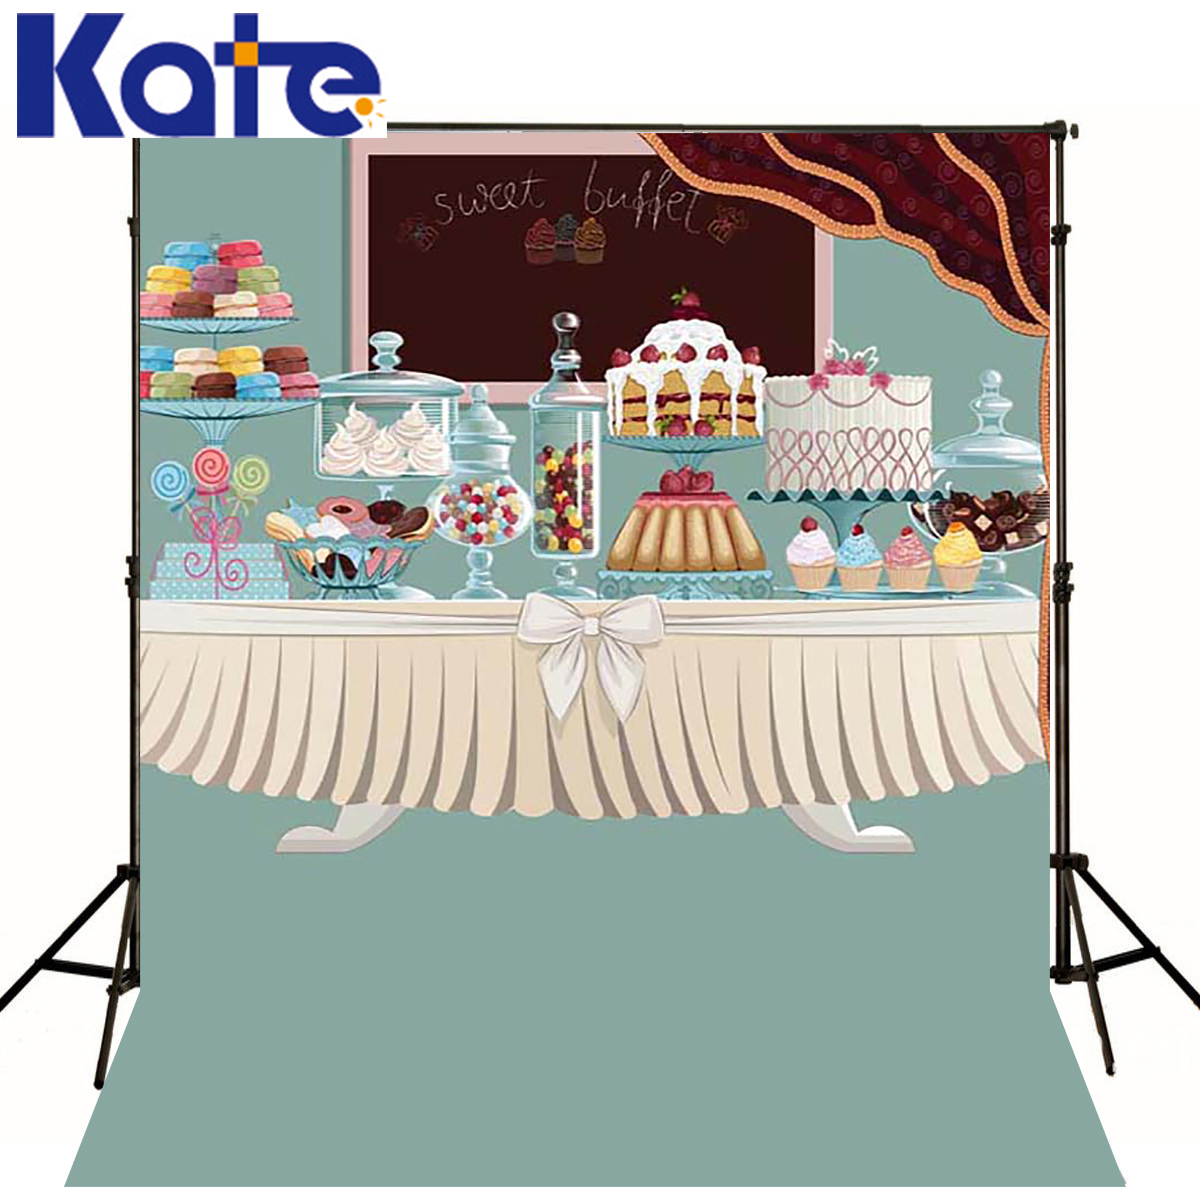 Kate Happy Birthday and Dessert table Background Newborn Cartoon Cake for Childre Photography Studio сумка kate spade new york wkru2816 kate spade hanna